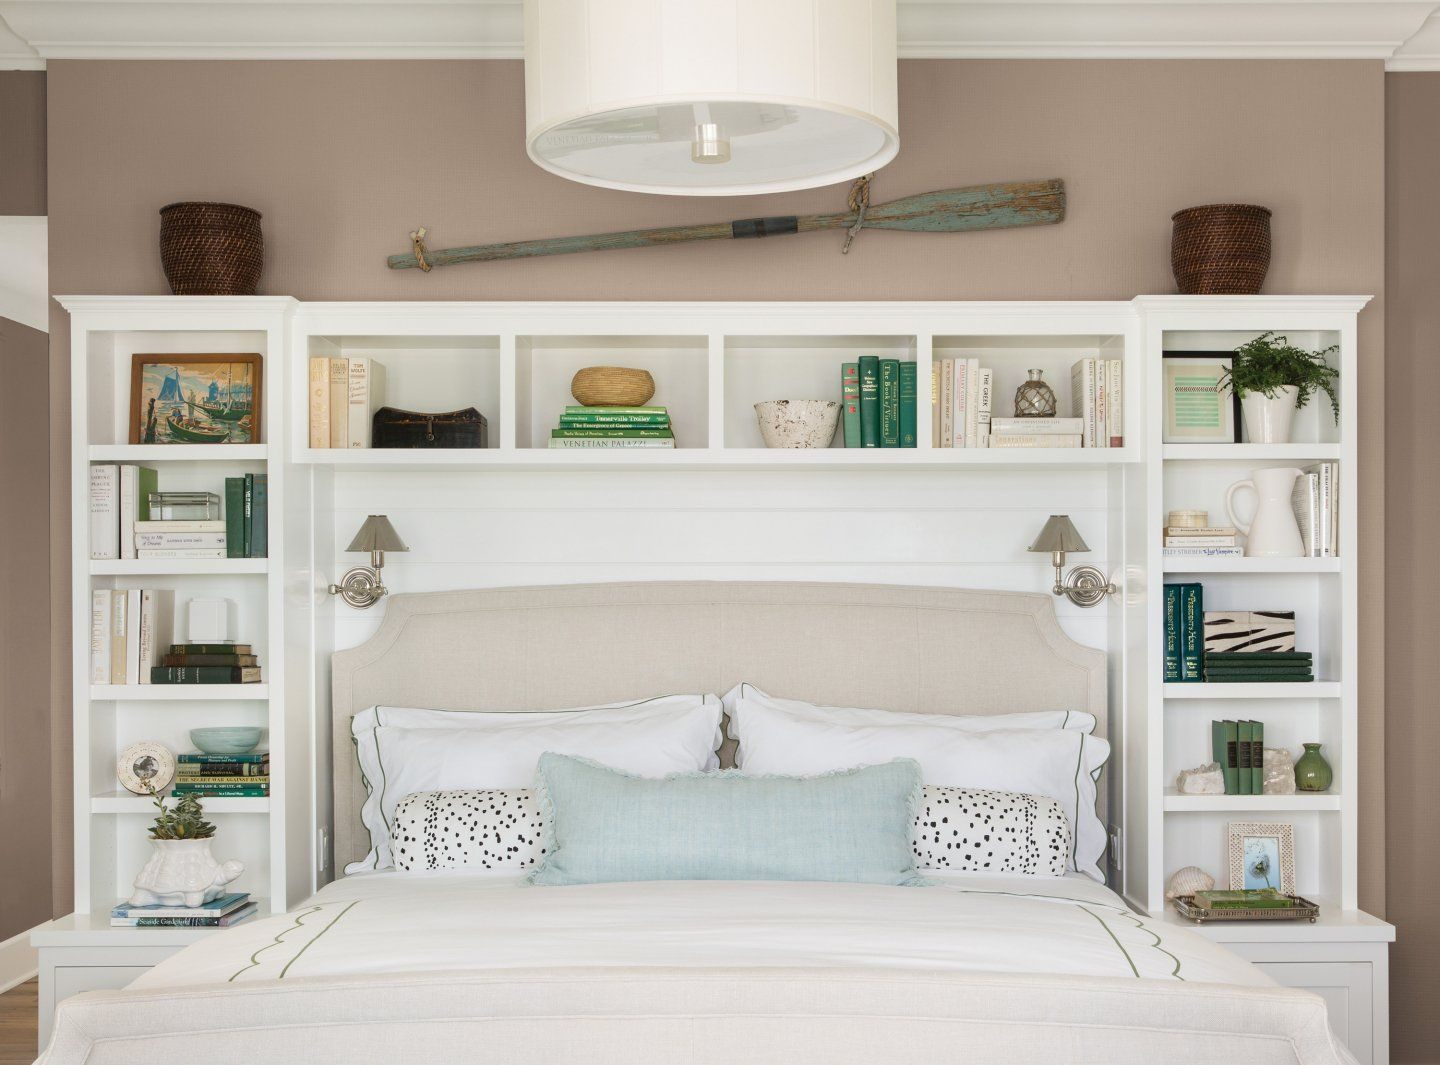 Shelf Headboard Ideas Part - 35: Creamy Neutral Walls Enhance A Beautiful Storage Headboard By Complementing  The Decorative Items And Echoing The